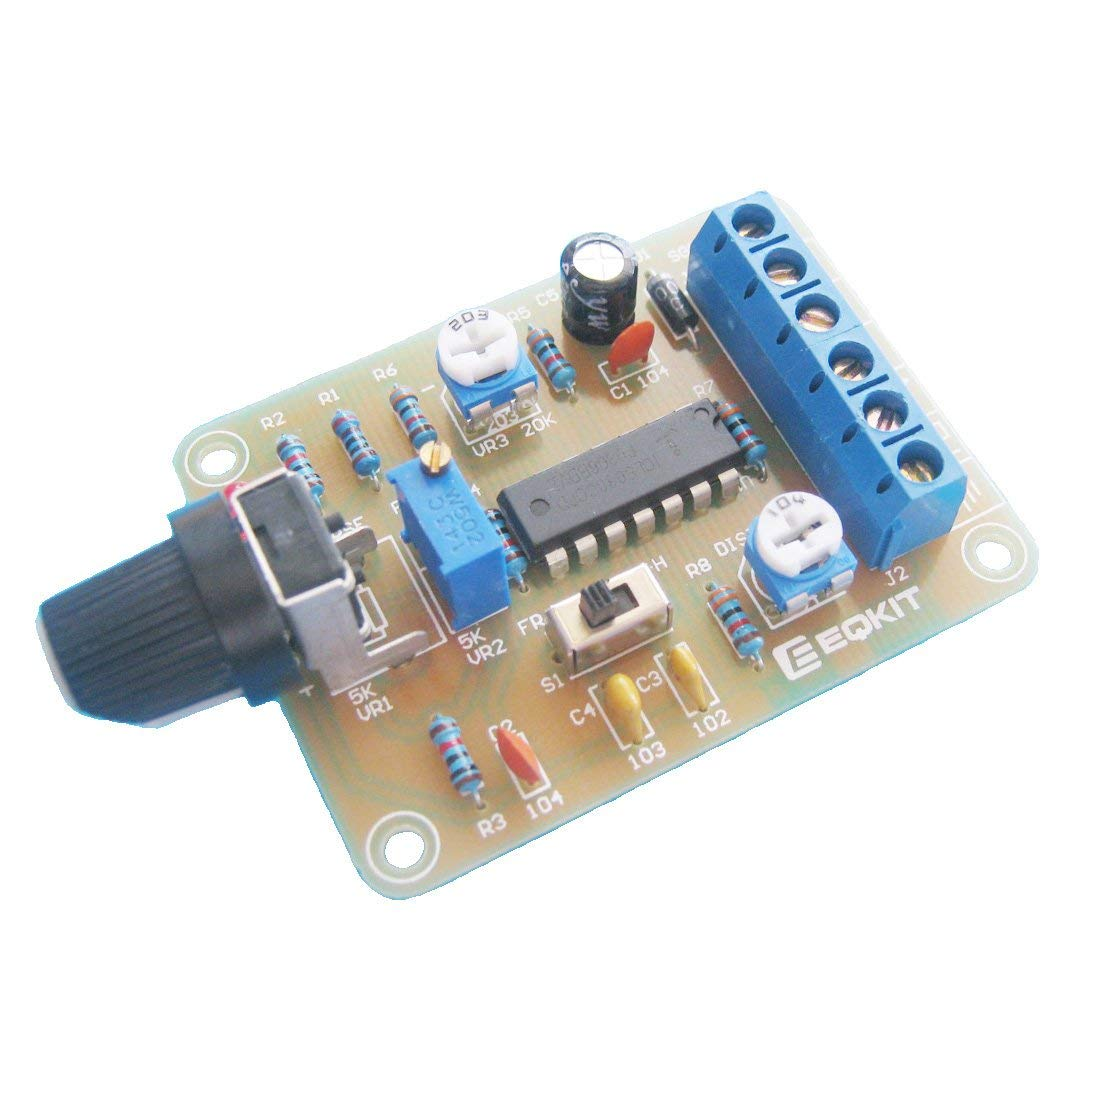 ICL8038 Monolithic Function Signal Generator Module DIY Kit Sine Square Triangle Wave